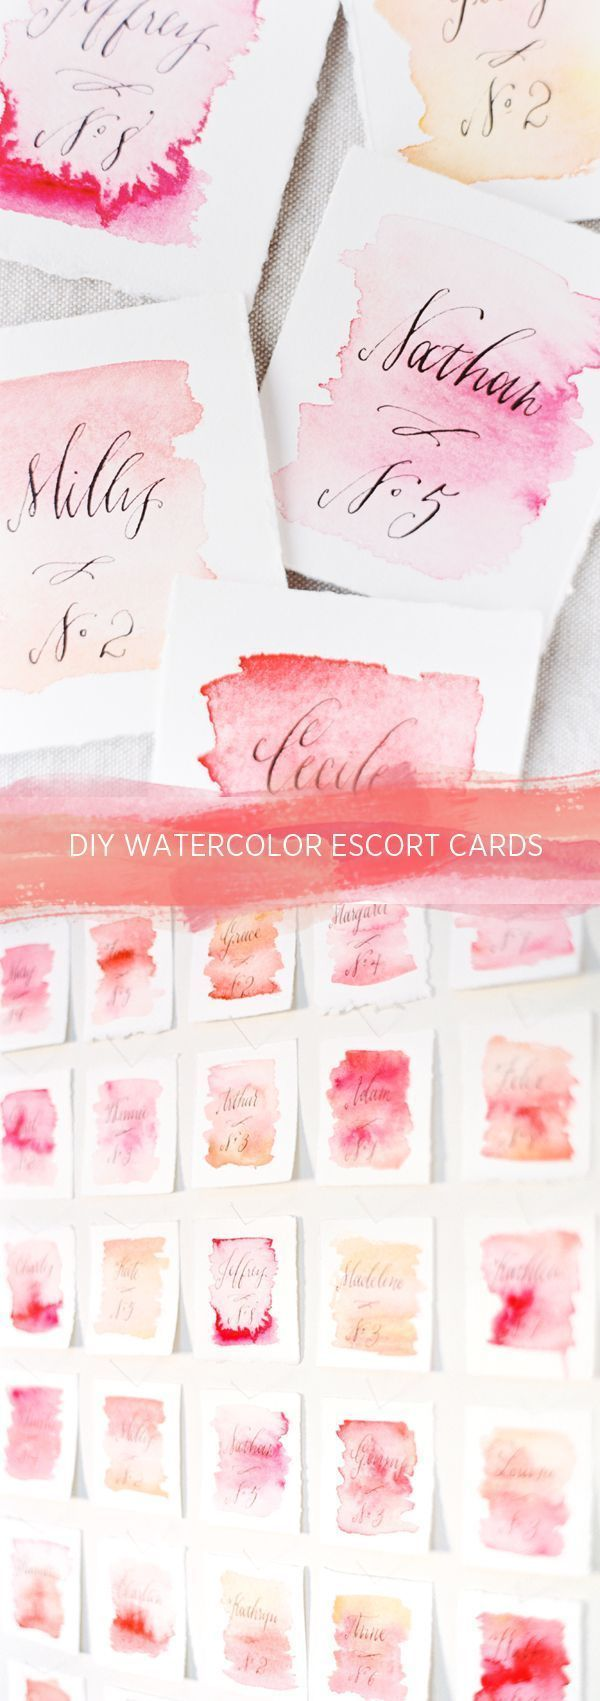 DIY Wedding Watercolor Escort Cards